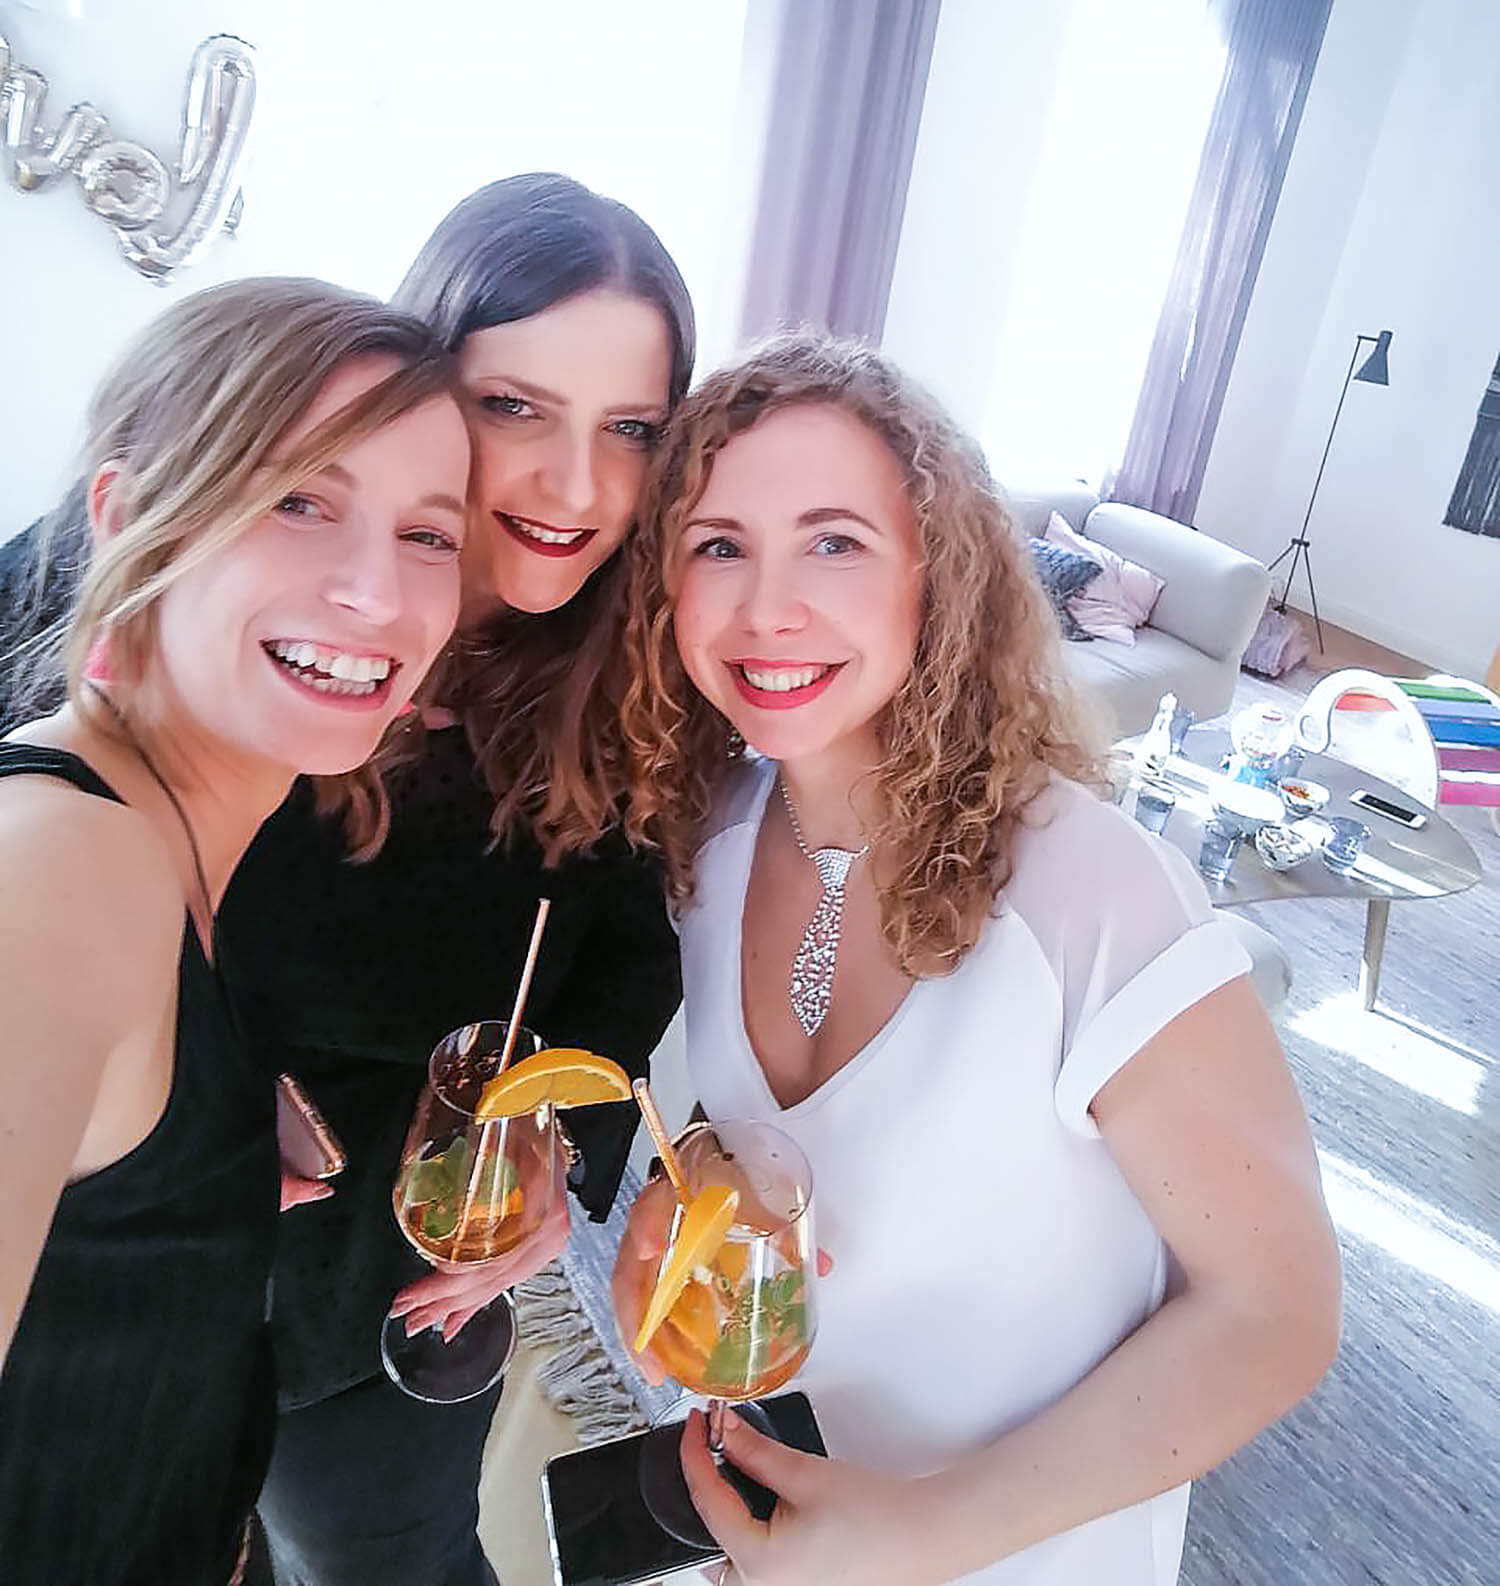 Wedding-Update-My-Bachelorette-Party-kationette-lifestyleblogger-nrw-jga